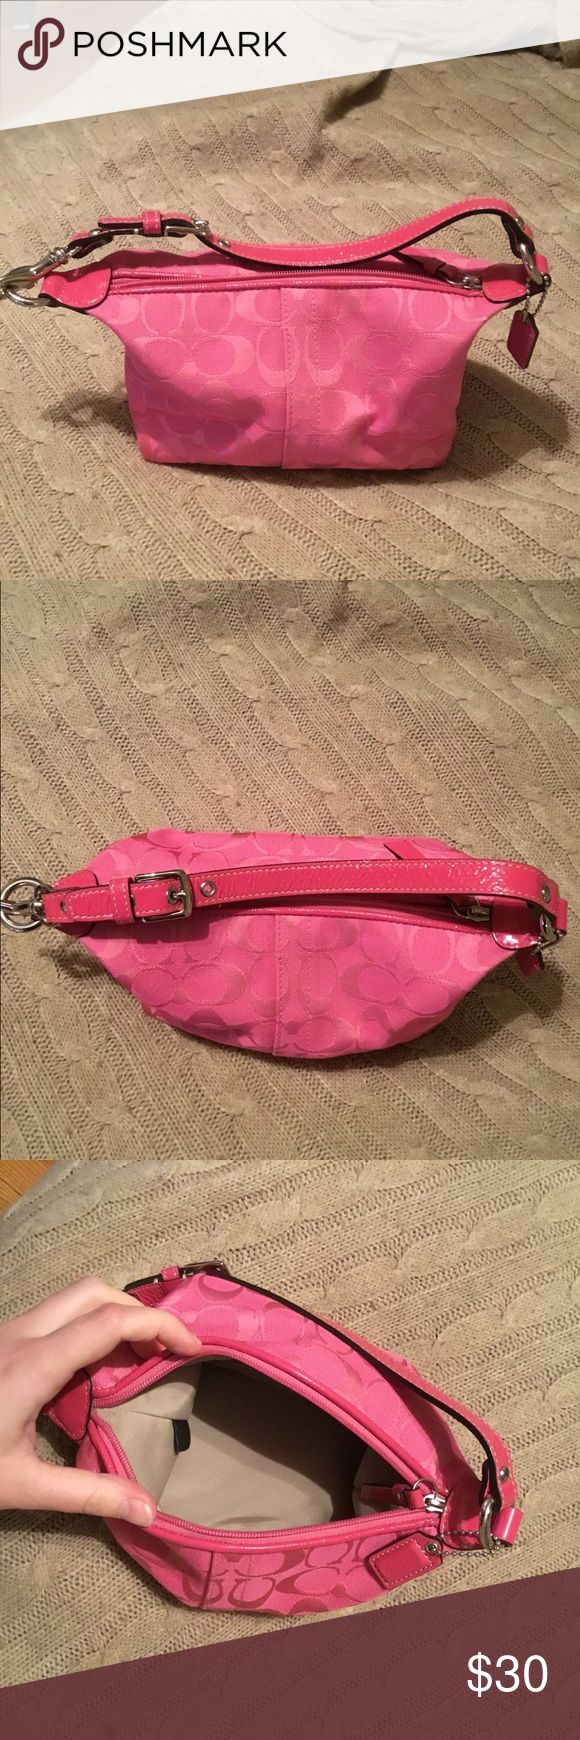 Coach purse Mini pink Coach purse. Gently used. No imperfections. Coach Bags Mini Bags